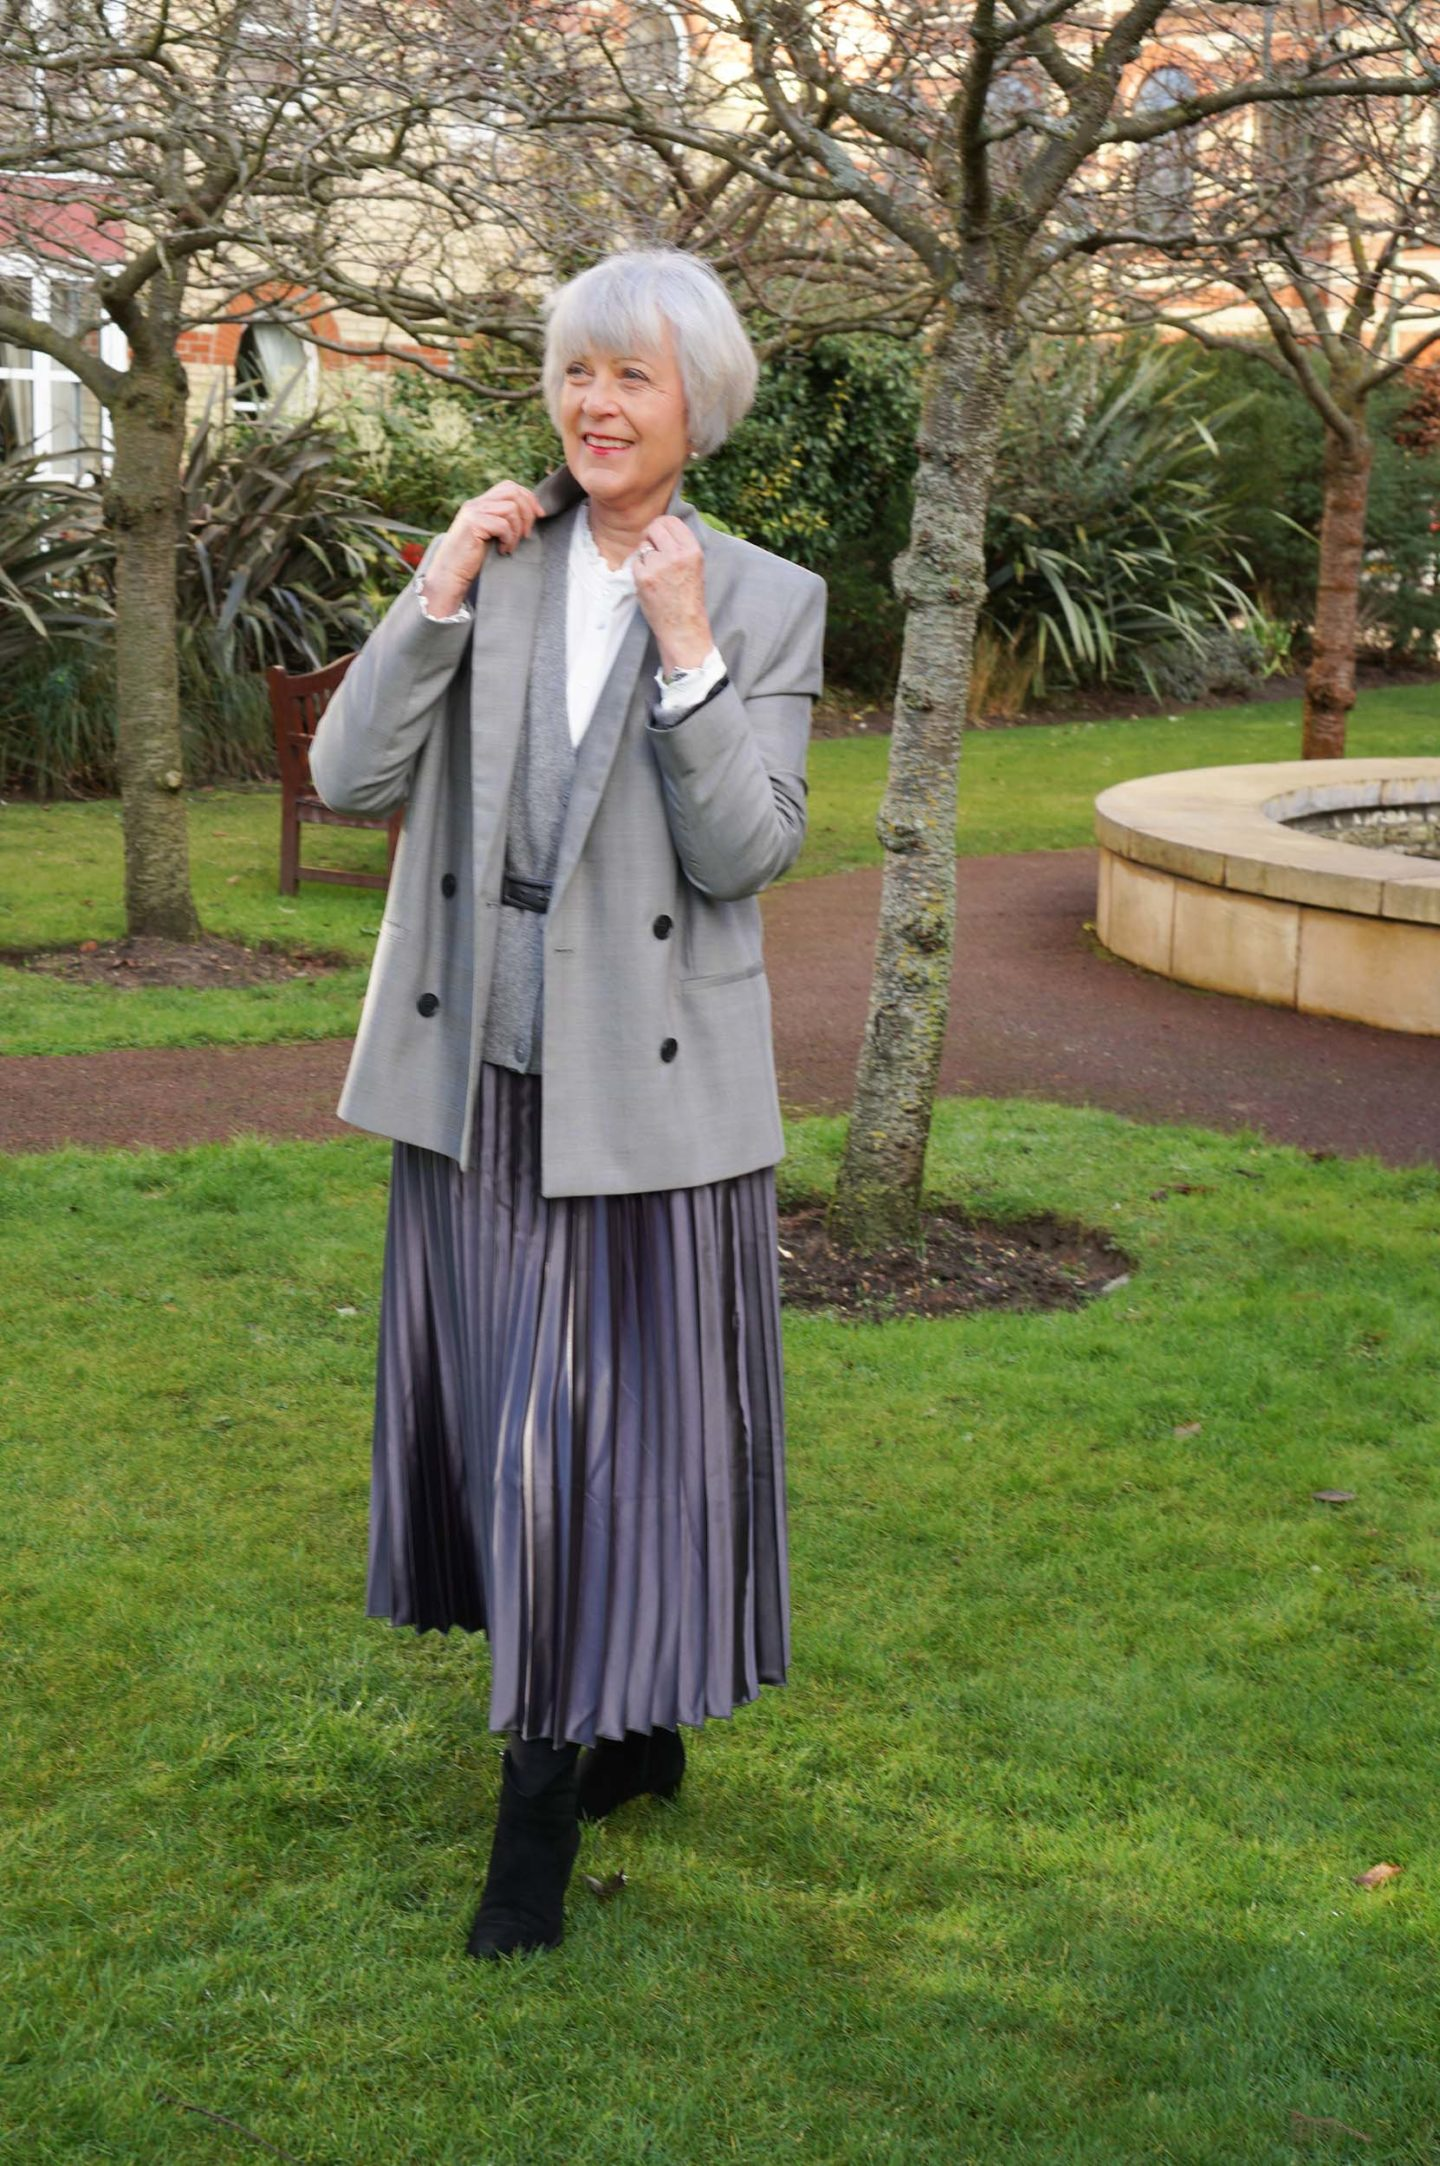 Grey pleated skirt and double breasted jacket